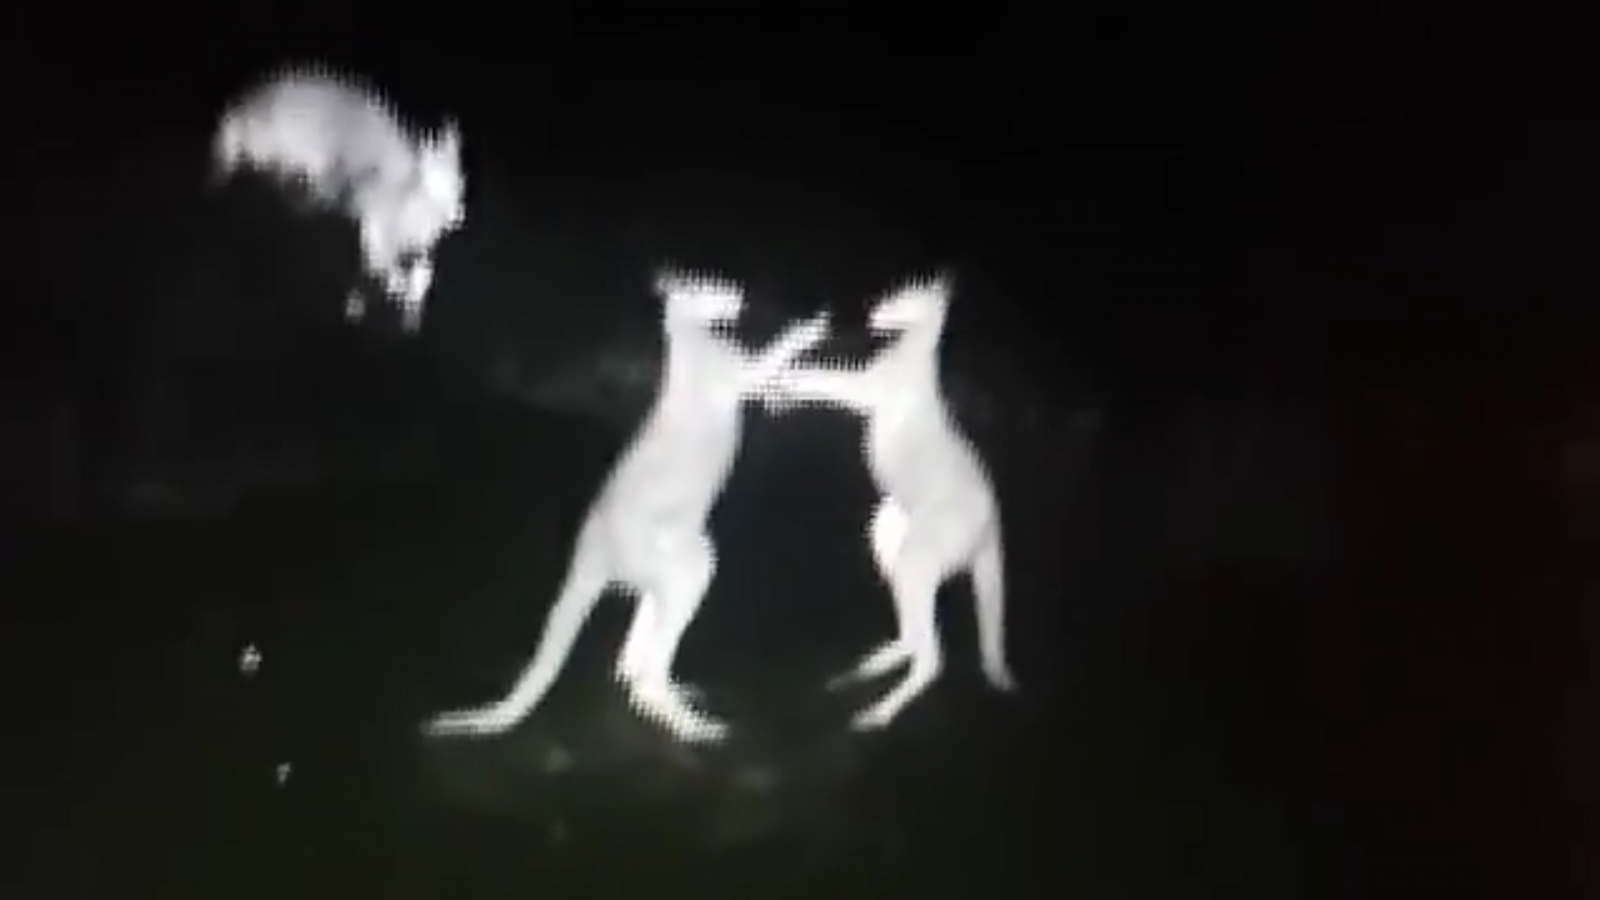 kangaroo-fight-caught-on-police-infrared-camera